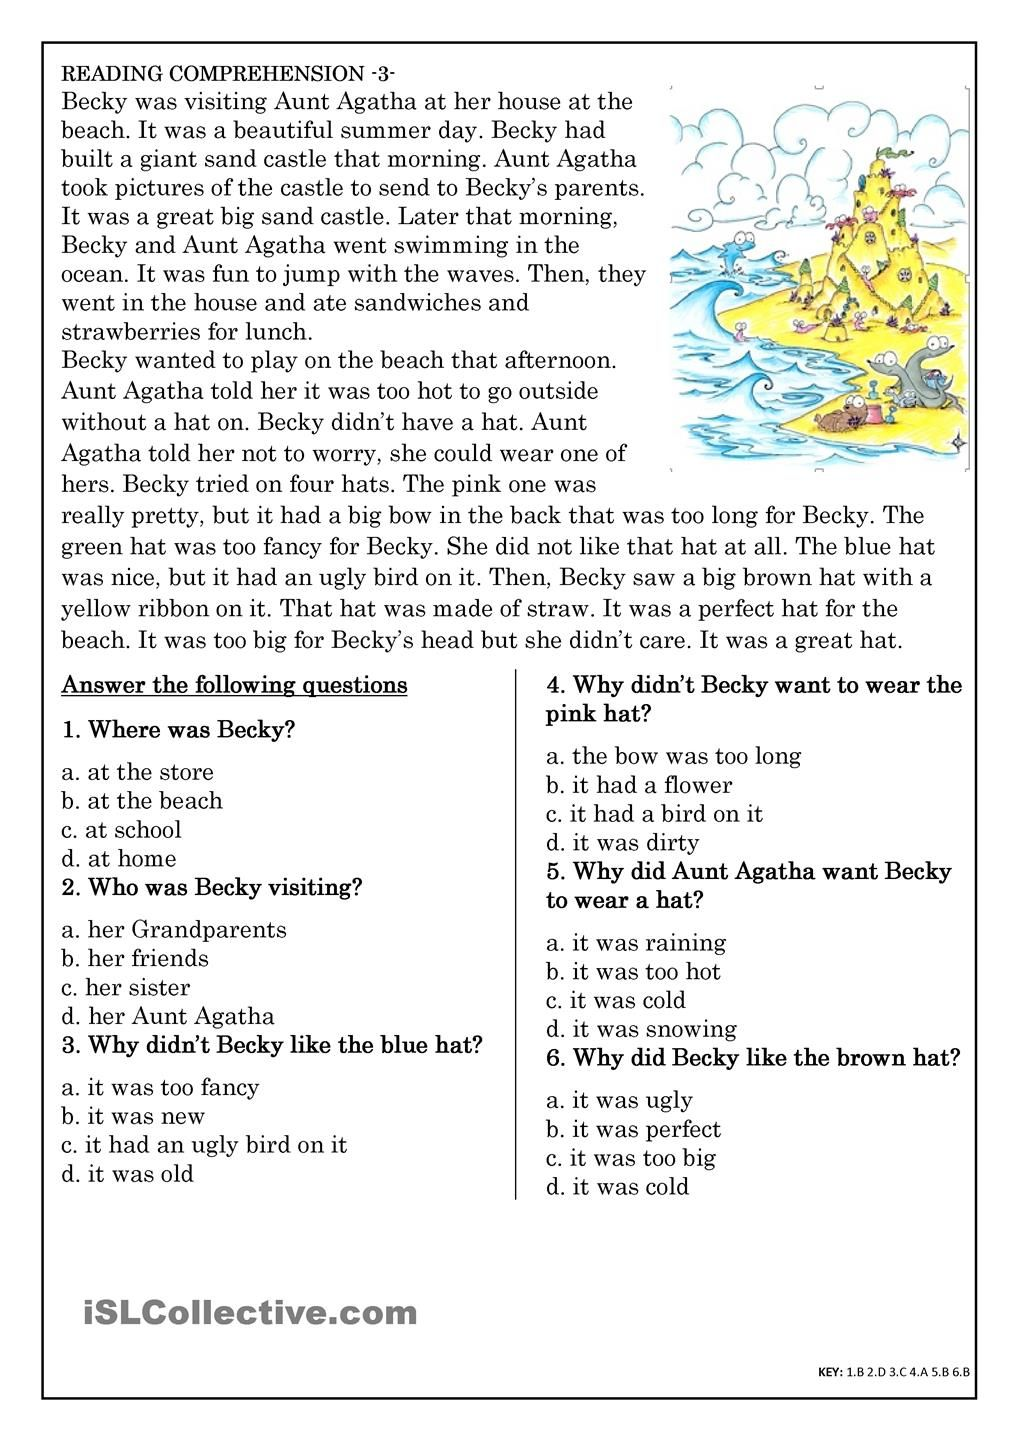 Worksheet Reading And Comprehension Exercises reading comprehension exercises esl scalien